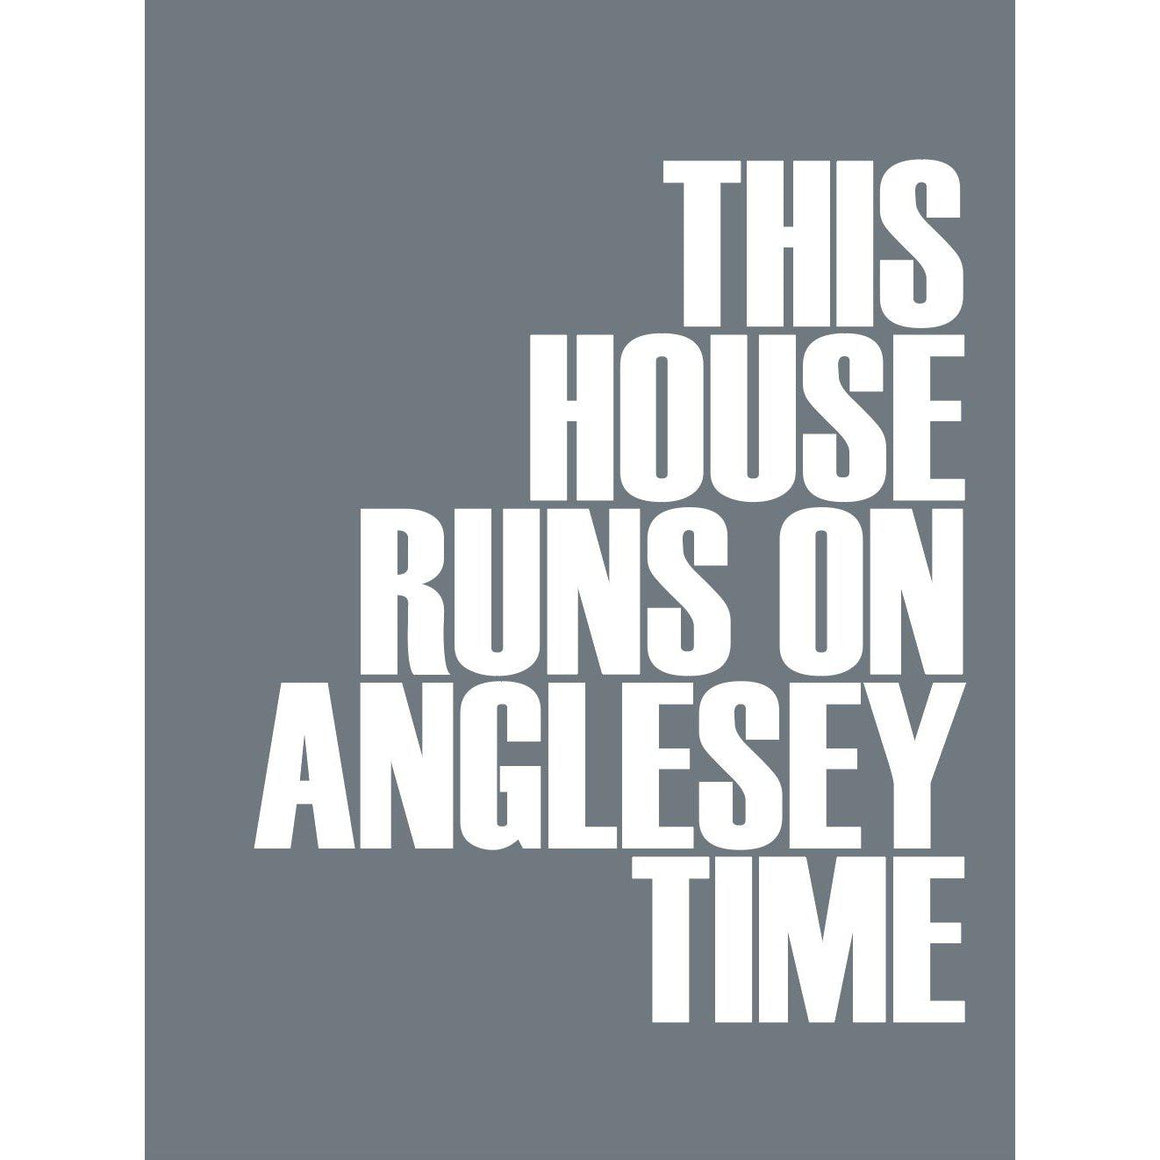 Anglesey Time Typographic Travel Print Coastal Wall Art by SeaKisses